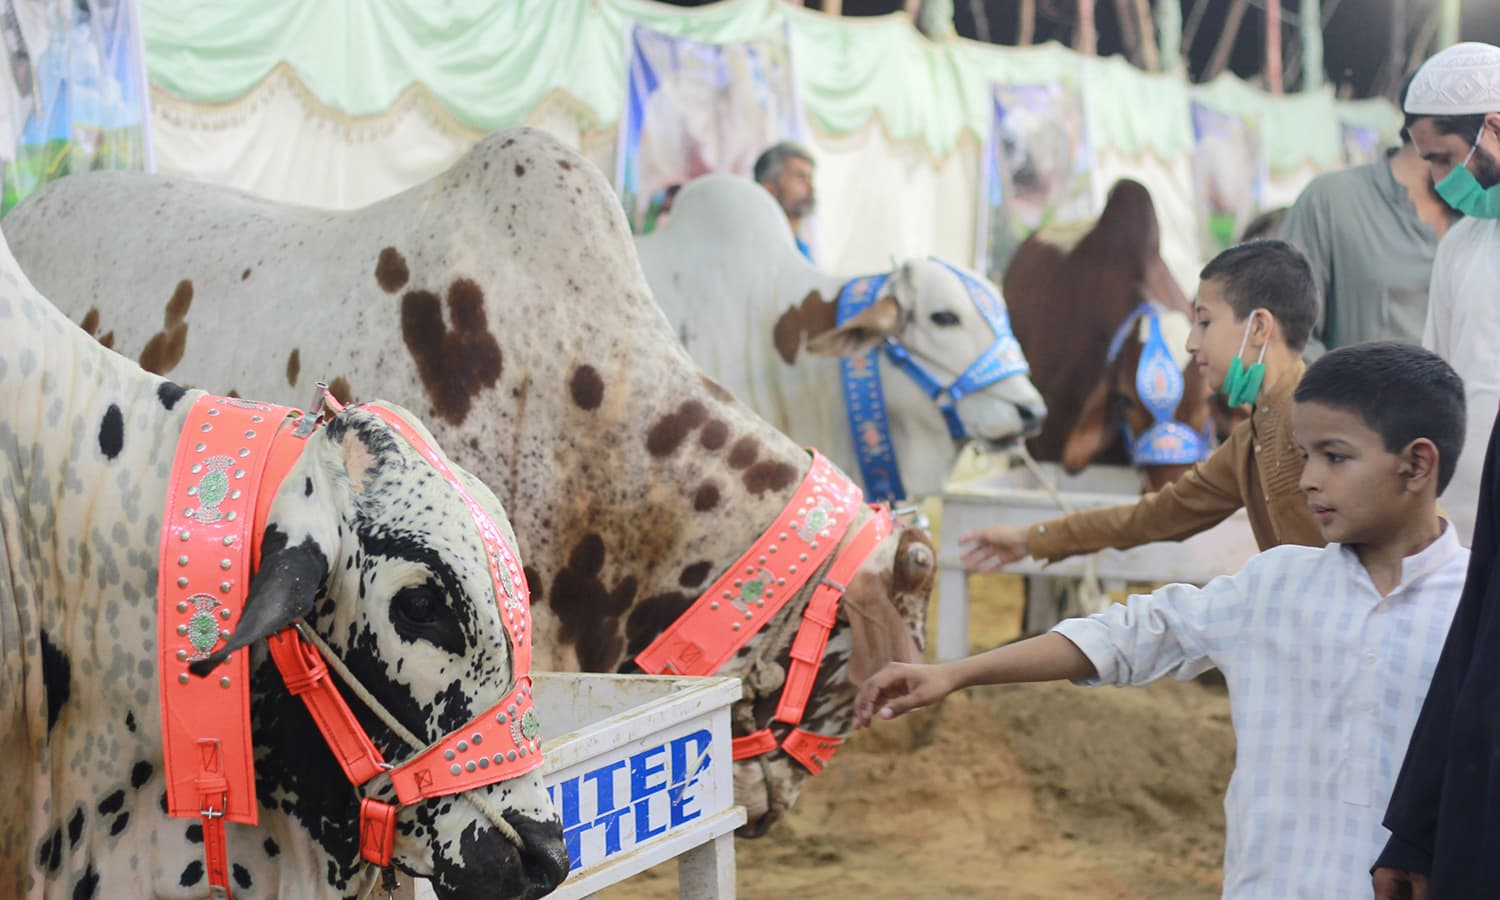 Children pet the cattle at the market. —Yumna Rafi